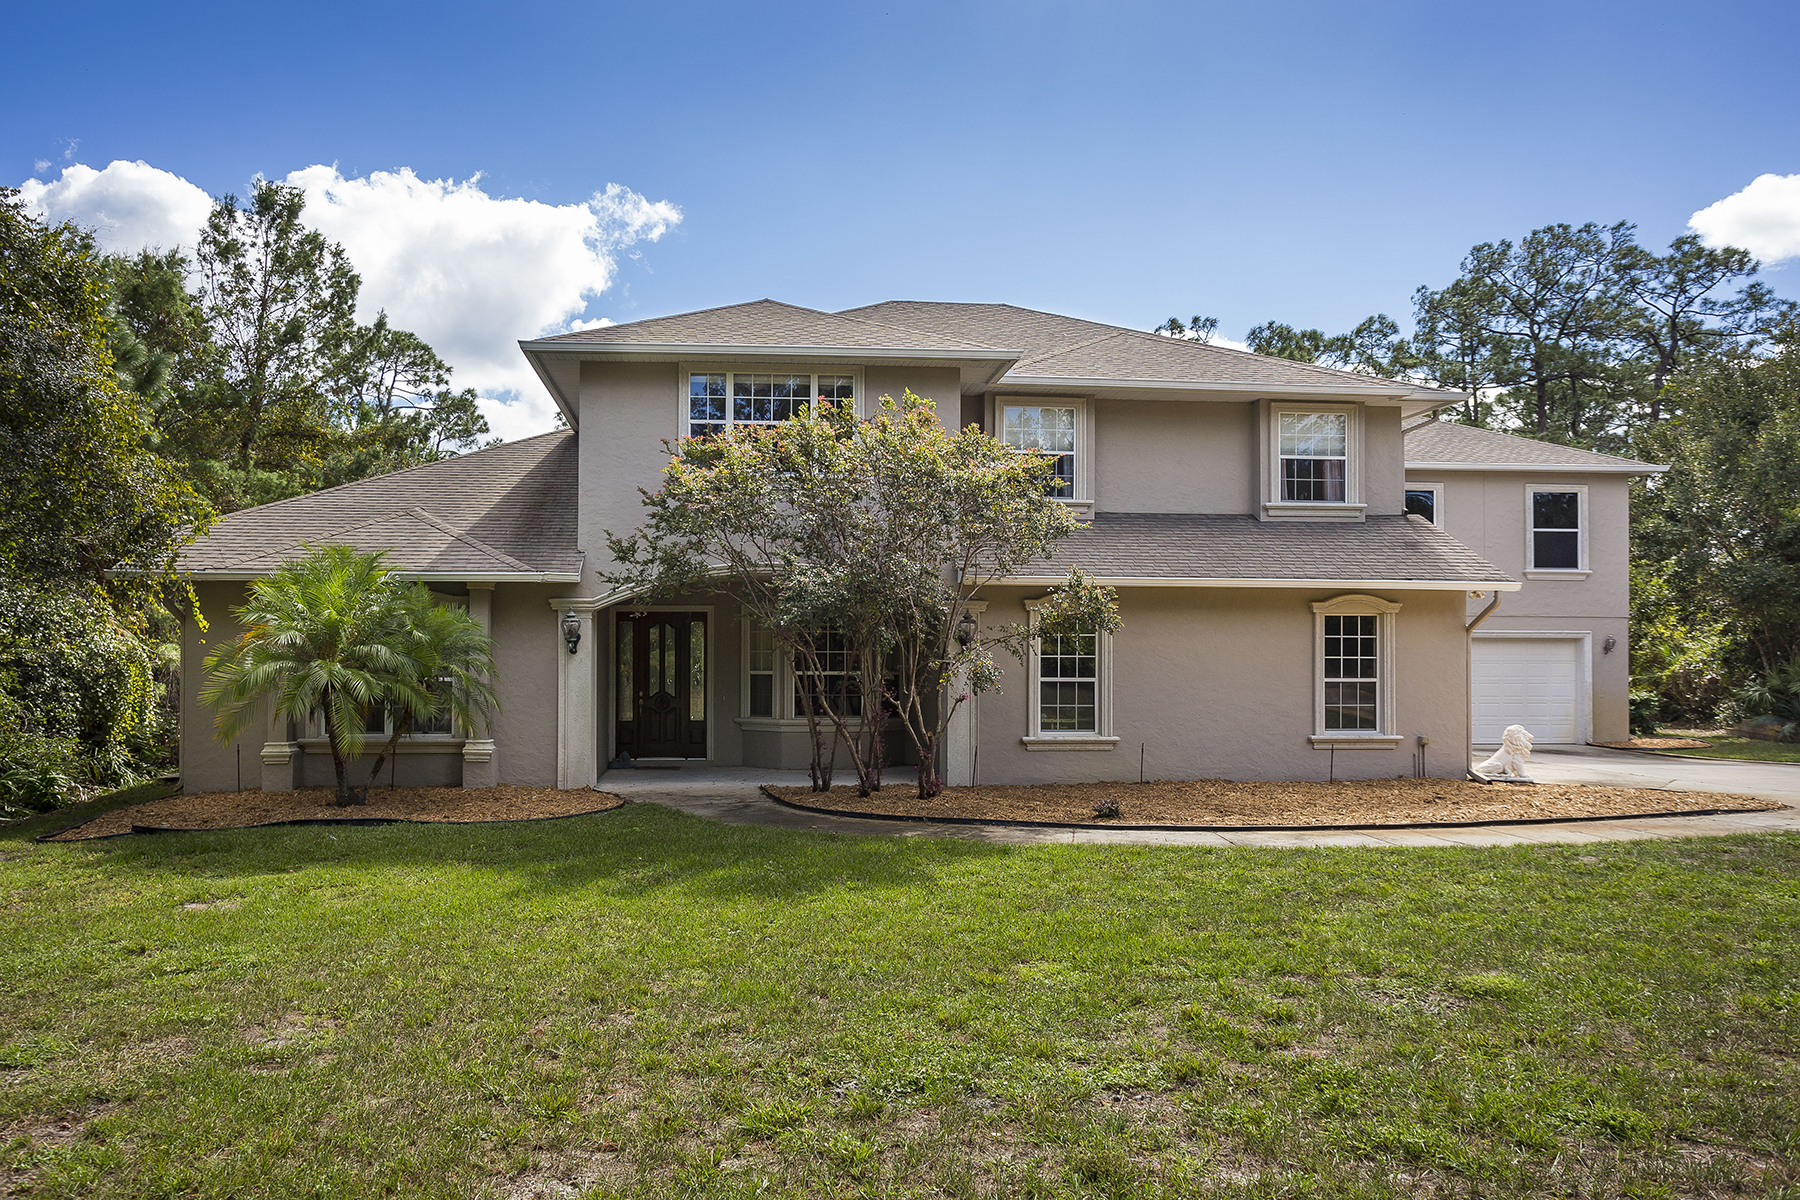 Single Family Home for Sale at ORLANDO - GENEVA 1136 Apache Dr, Geneva, Florida 32732 United States